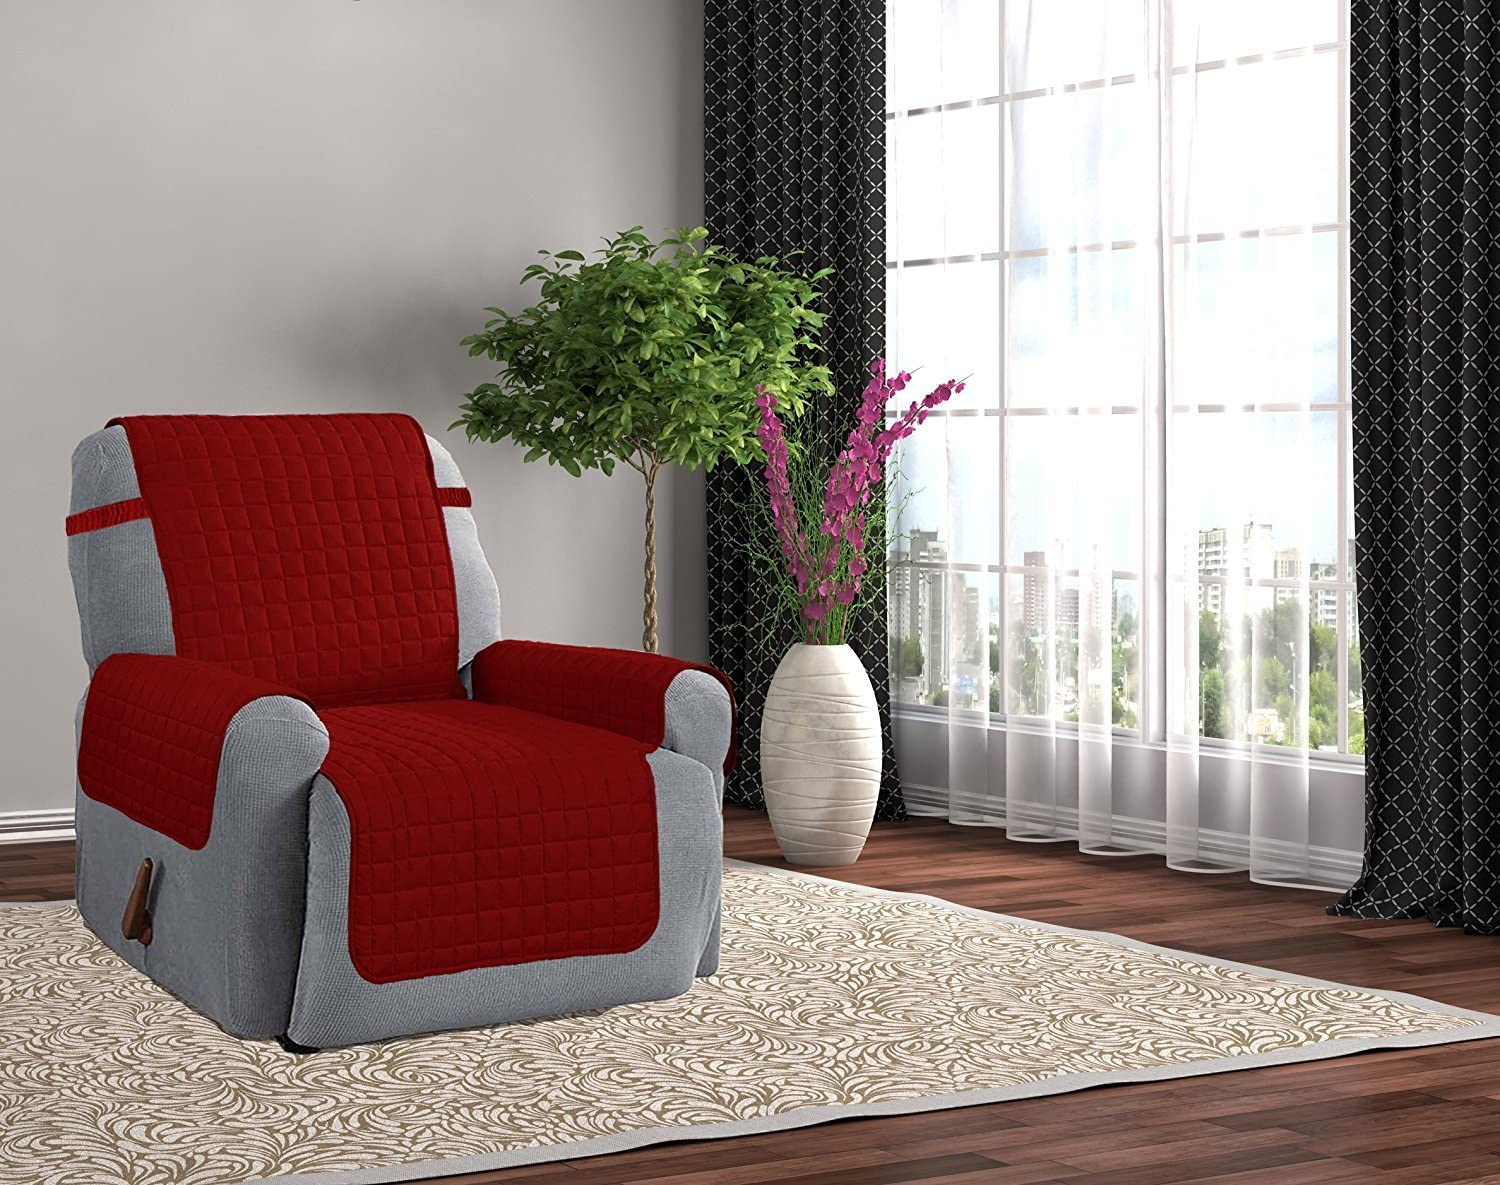 Kashi Home Microfiber Furniture Recliner Protector with 5